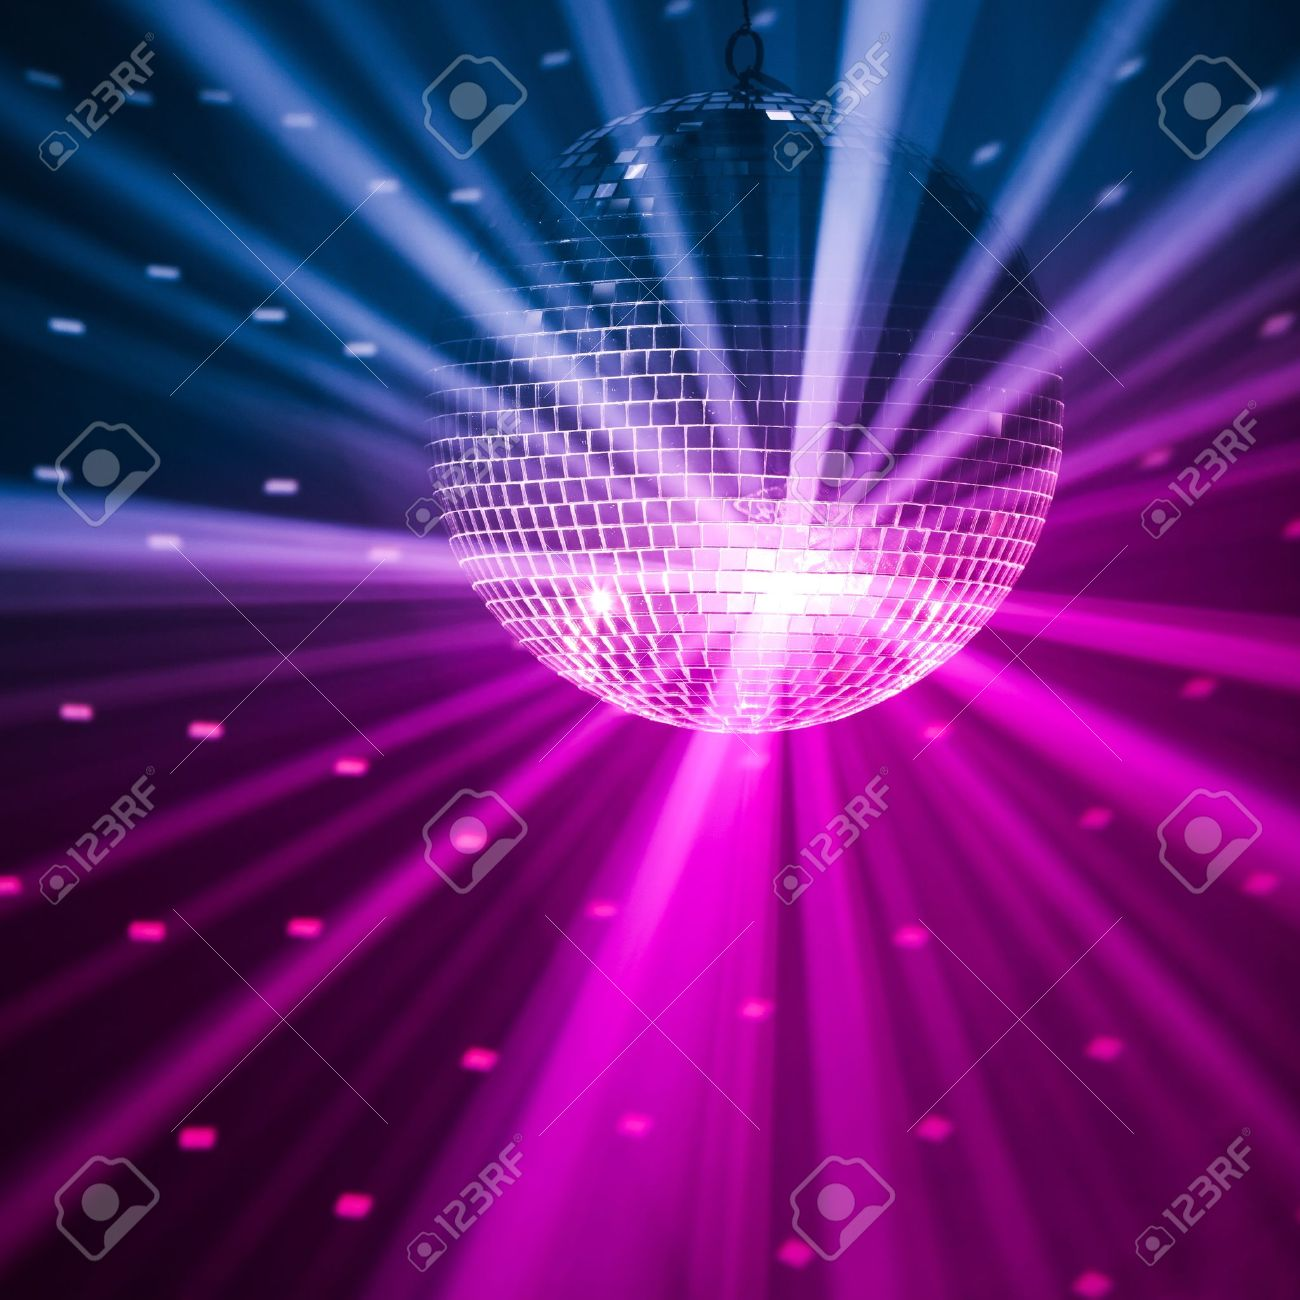 Party Lights Background Stock Photo Picture And Royalty Free Image